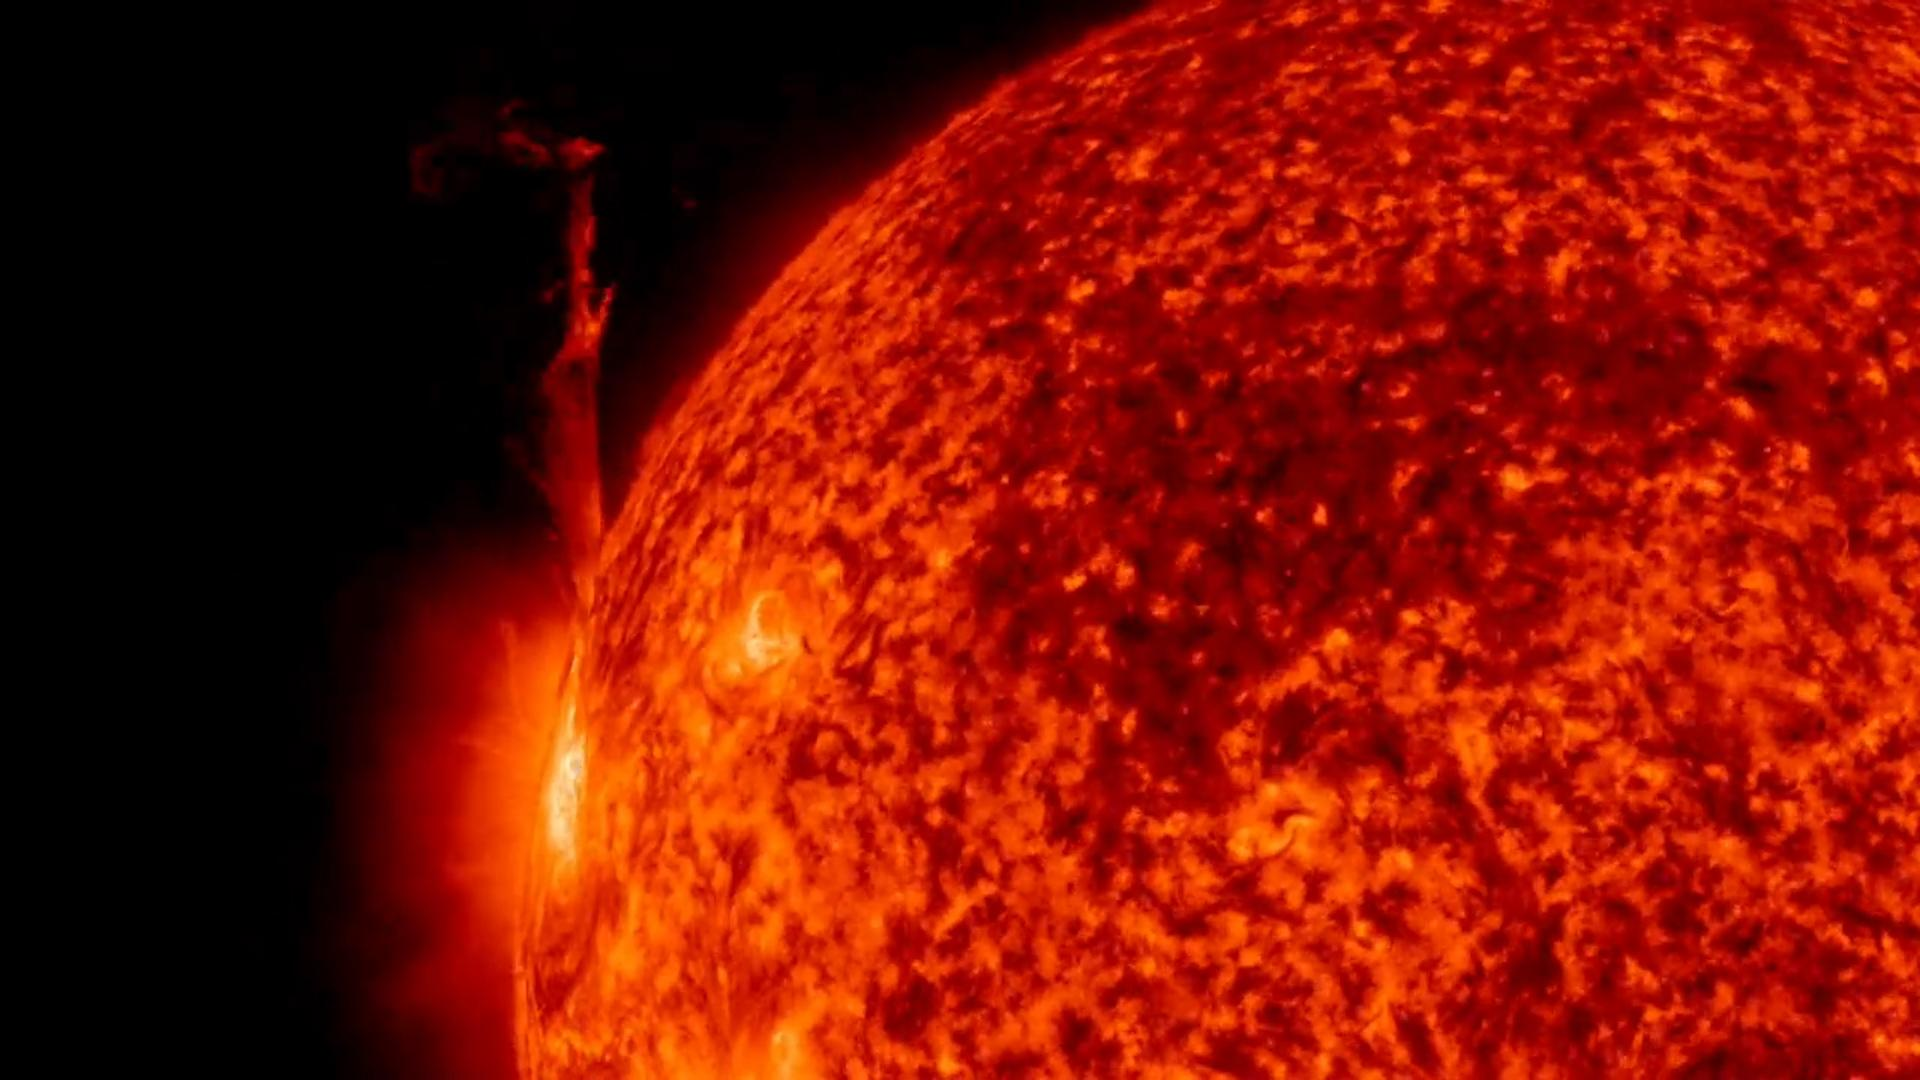 Watch in Awe as the Sun Shoots Out Molten Plasma